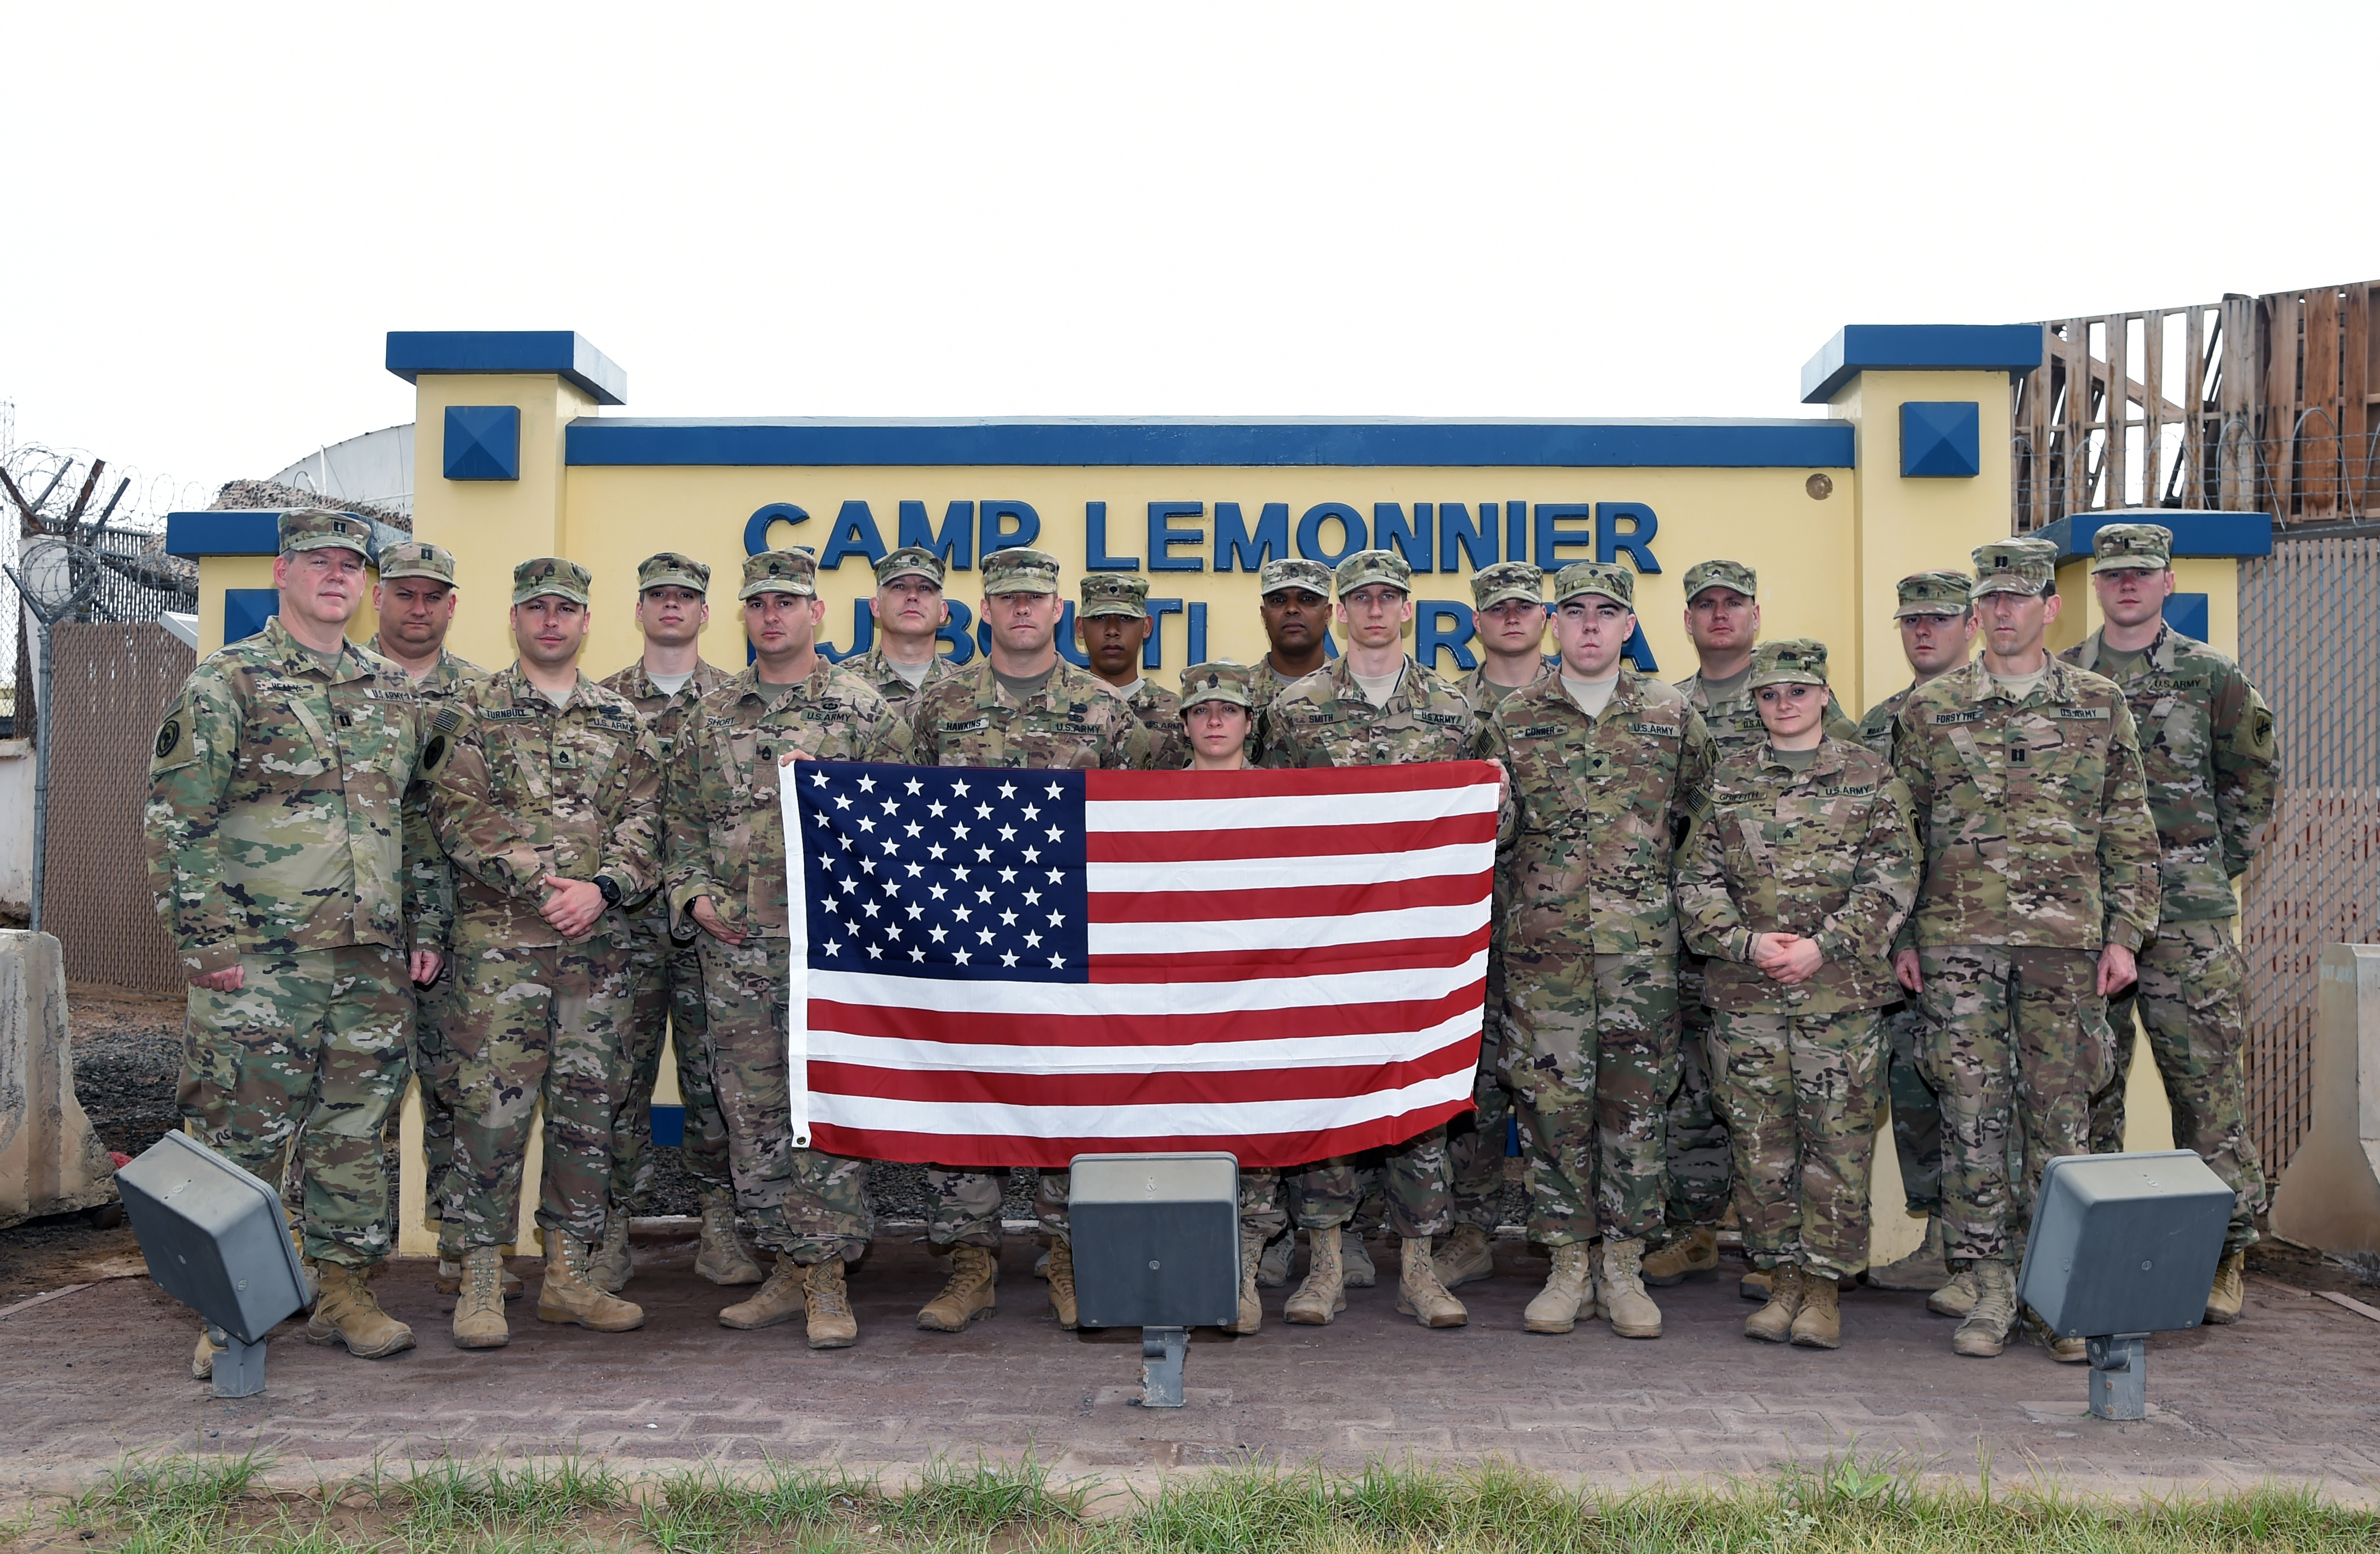 U.S. Soldiers assigned to Combined Joint Task Force-Horn of Africa's operations directorate are presented the U.S. Africa Command combat patch while deployed to Camp Lemonnier, Djibouti, Feb. 25, 2017. The tradition of the combat patch dates back to World War I when members of the U.S. Army's 81st Infantry Division were authorized to wear distinctive shoulder sleeve insignia during and following their service in France. (U.S. Air National Guard photo by Master Sgt. Paul Gorman)